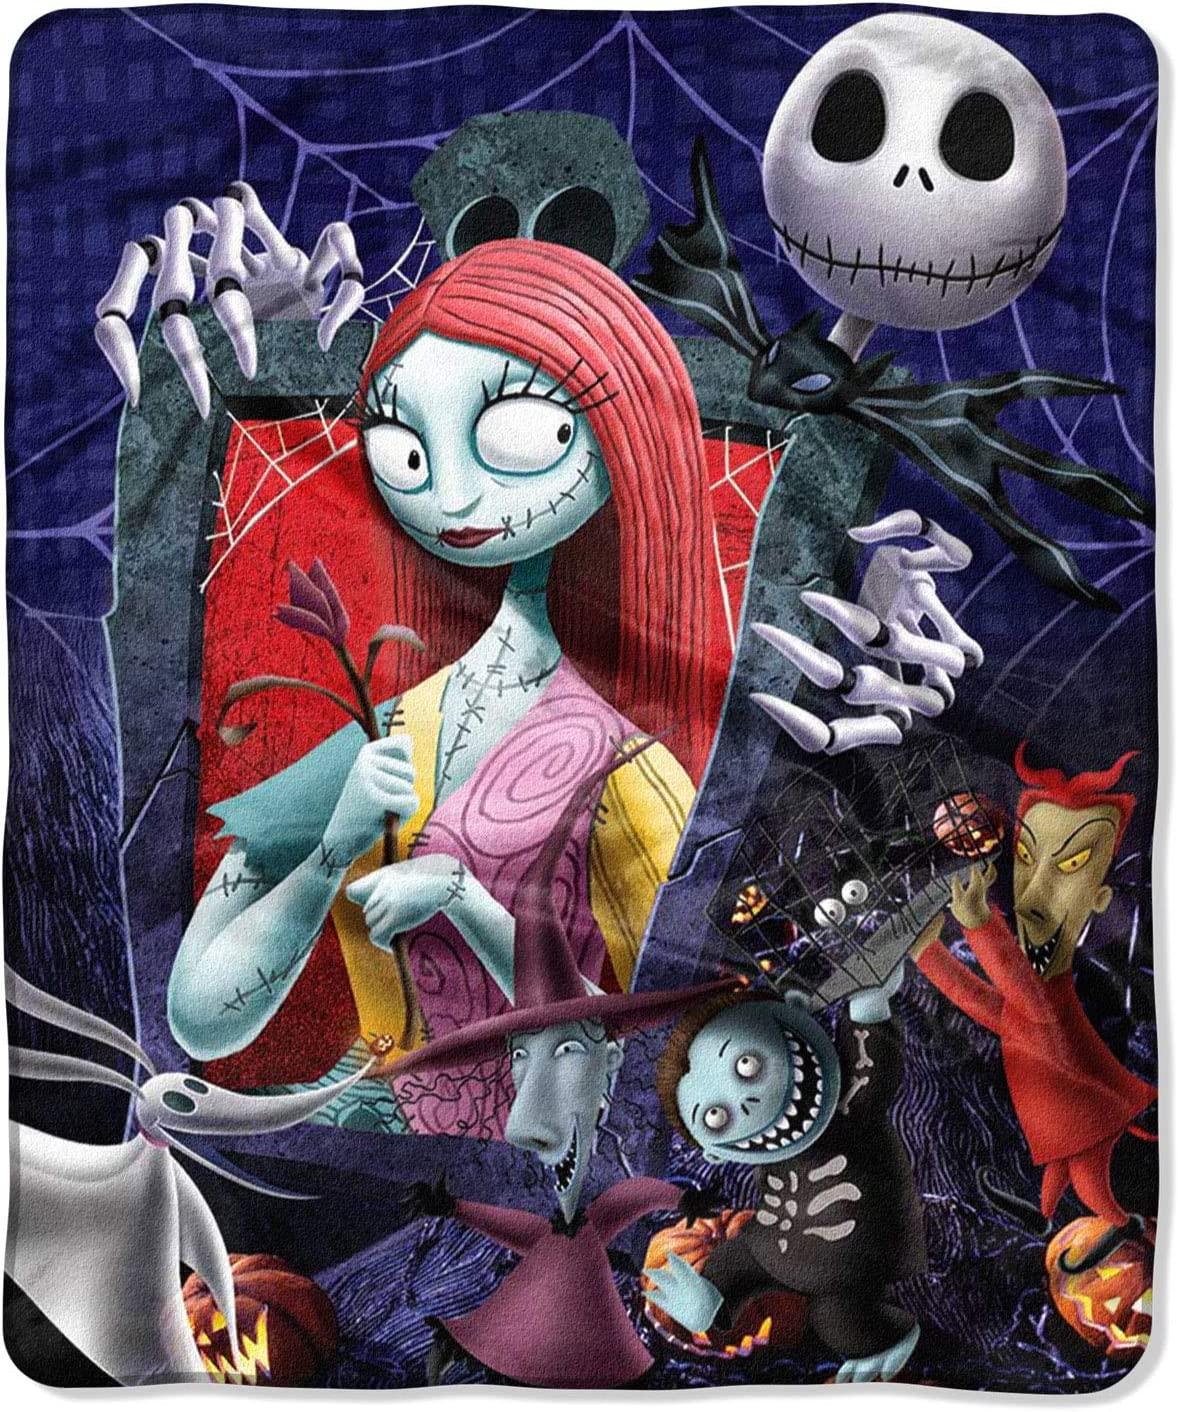 "Disney Nightmare Before Christmas Jack Skellington Sally and The Gang Silk Touch Throw Blanket 50"" x60"" (127cm x 152cm)"